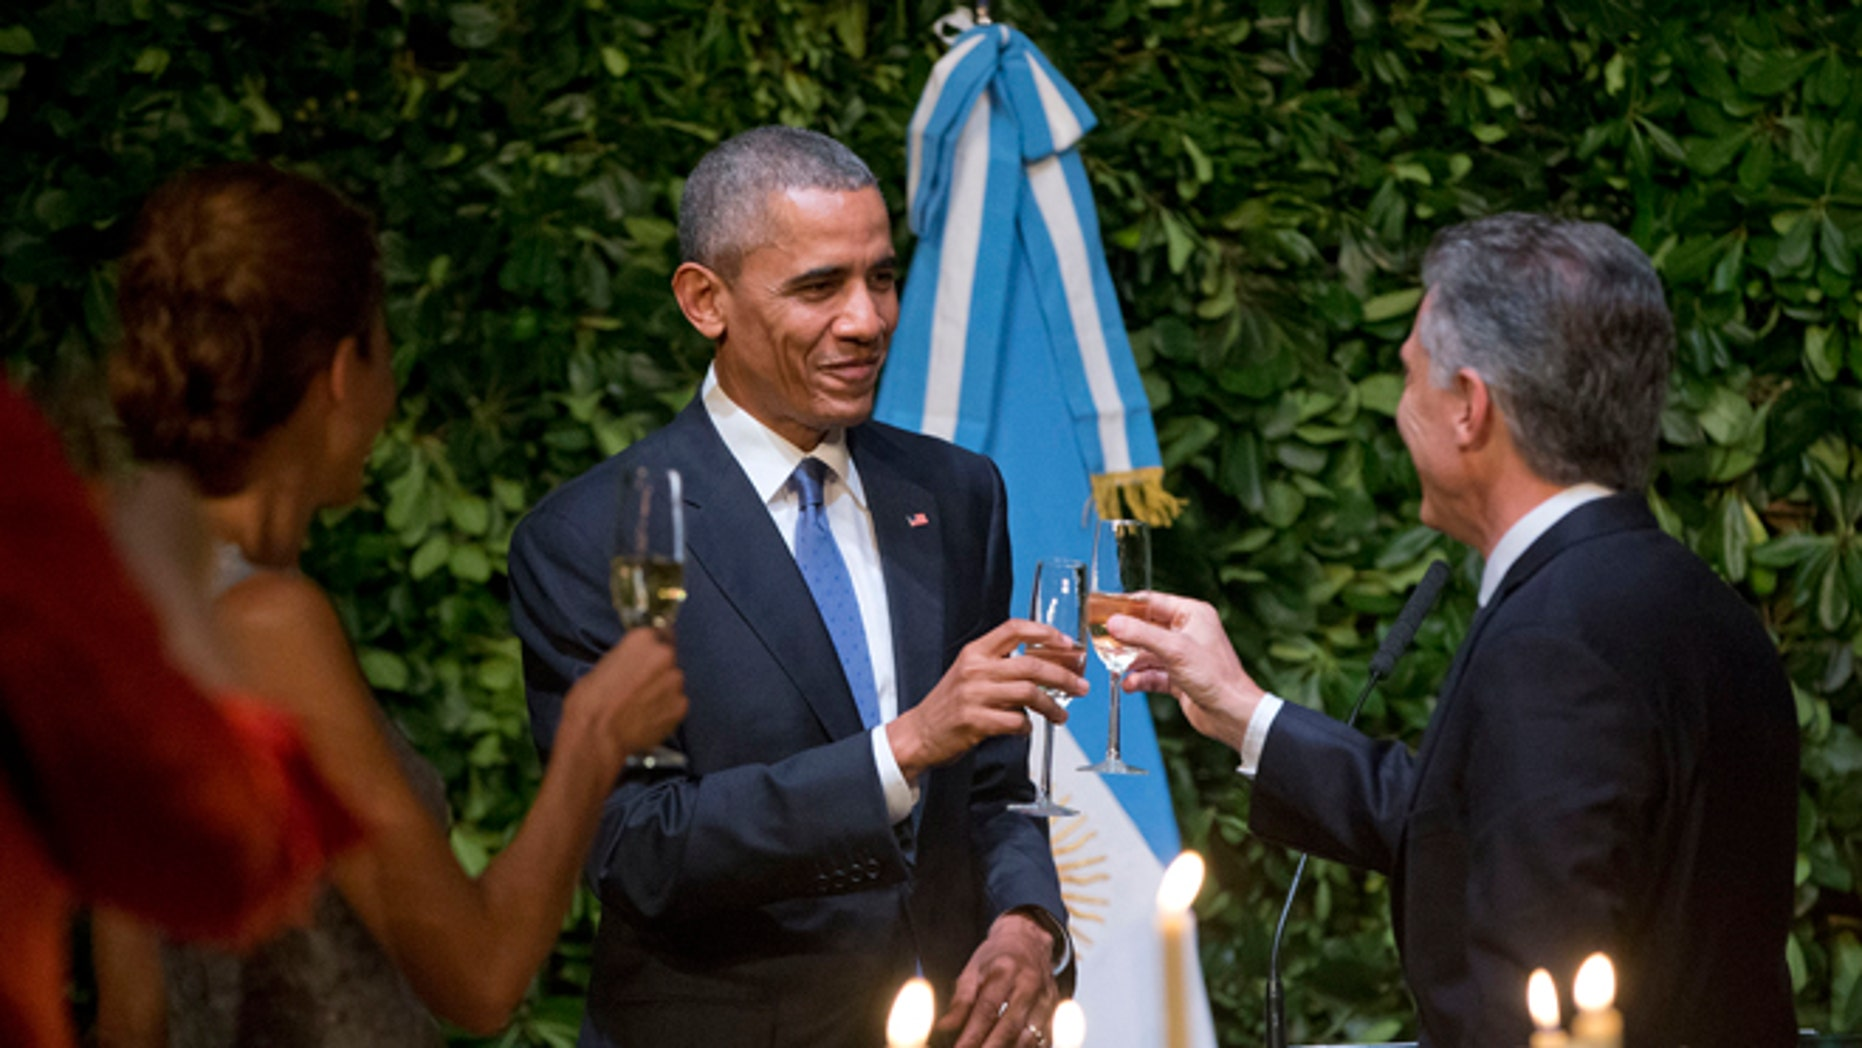 President Barack Obama and Argentinian President Mauricio Macri toast during the State Dinner at the Centro Cultural Kirchner, Wednesday, March 23, 2016, in Buenos Aires, Argentina. (AP Photo/Pablo Martinez Monsivais)